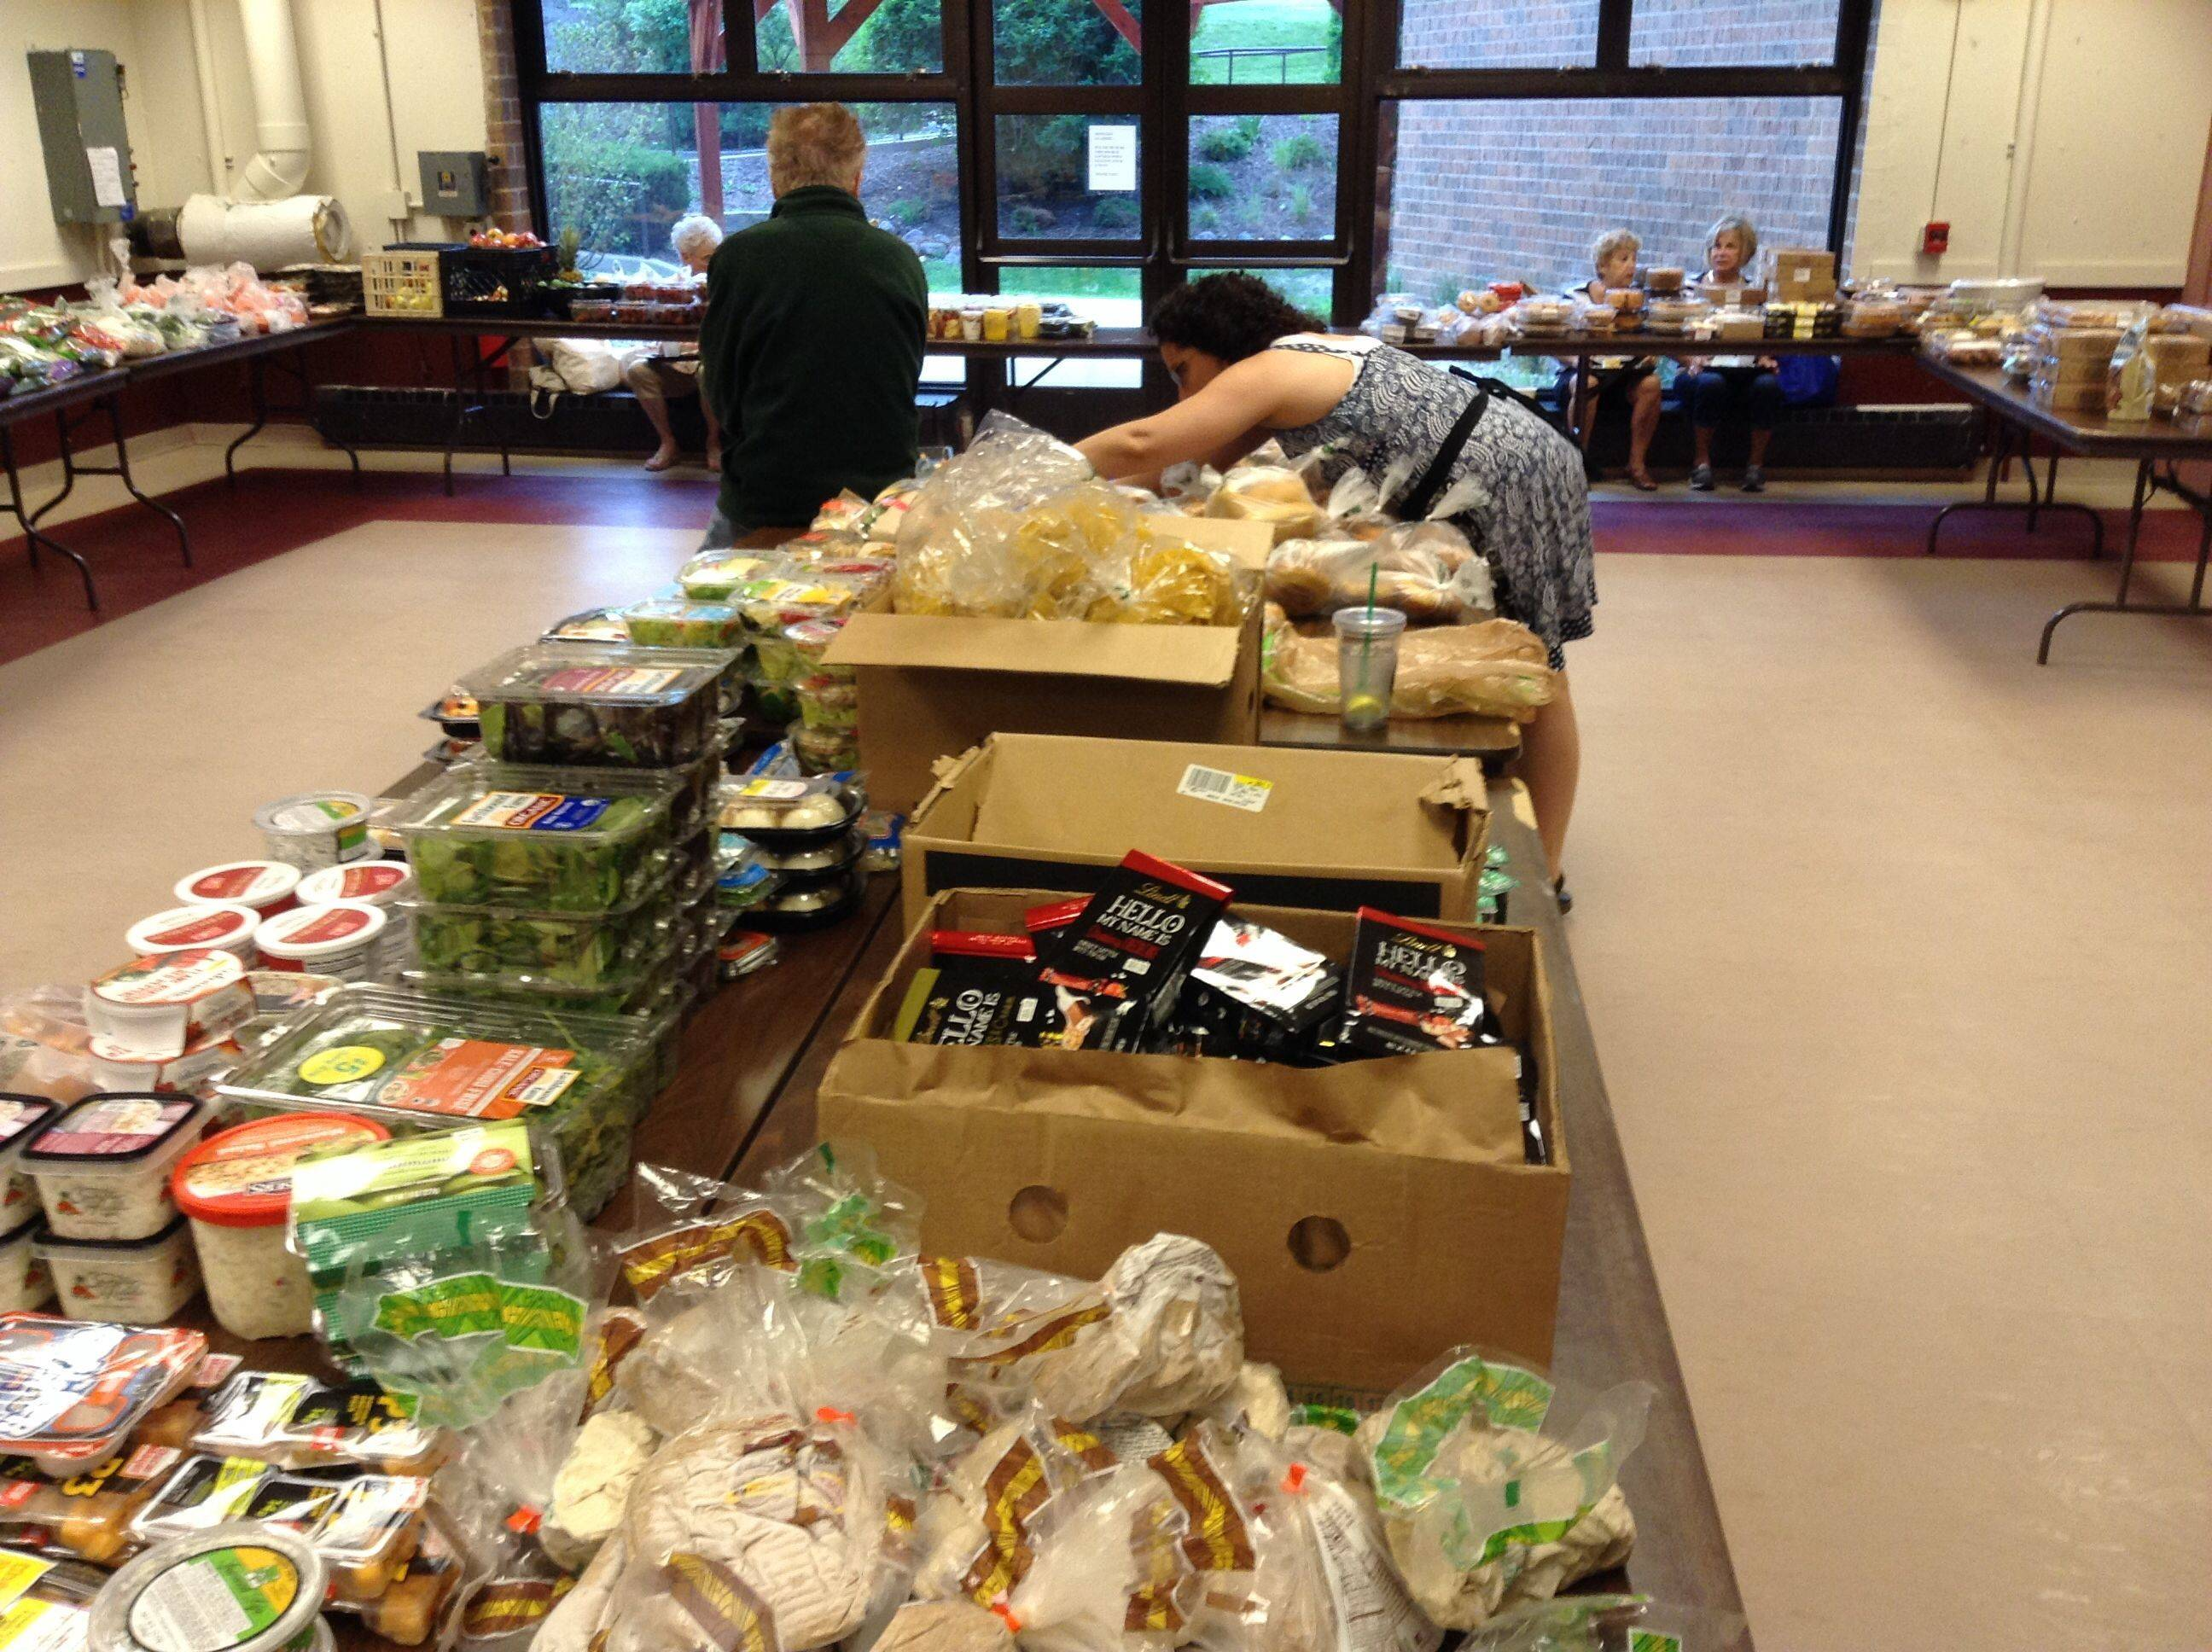 Emmaus House's Harvest Room at St. Francis de Sales Church in Lake Zurich.